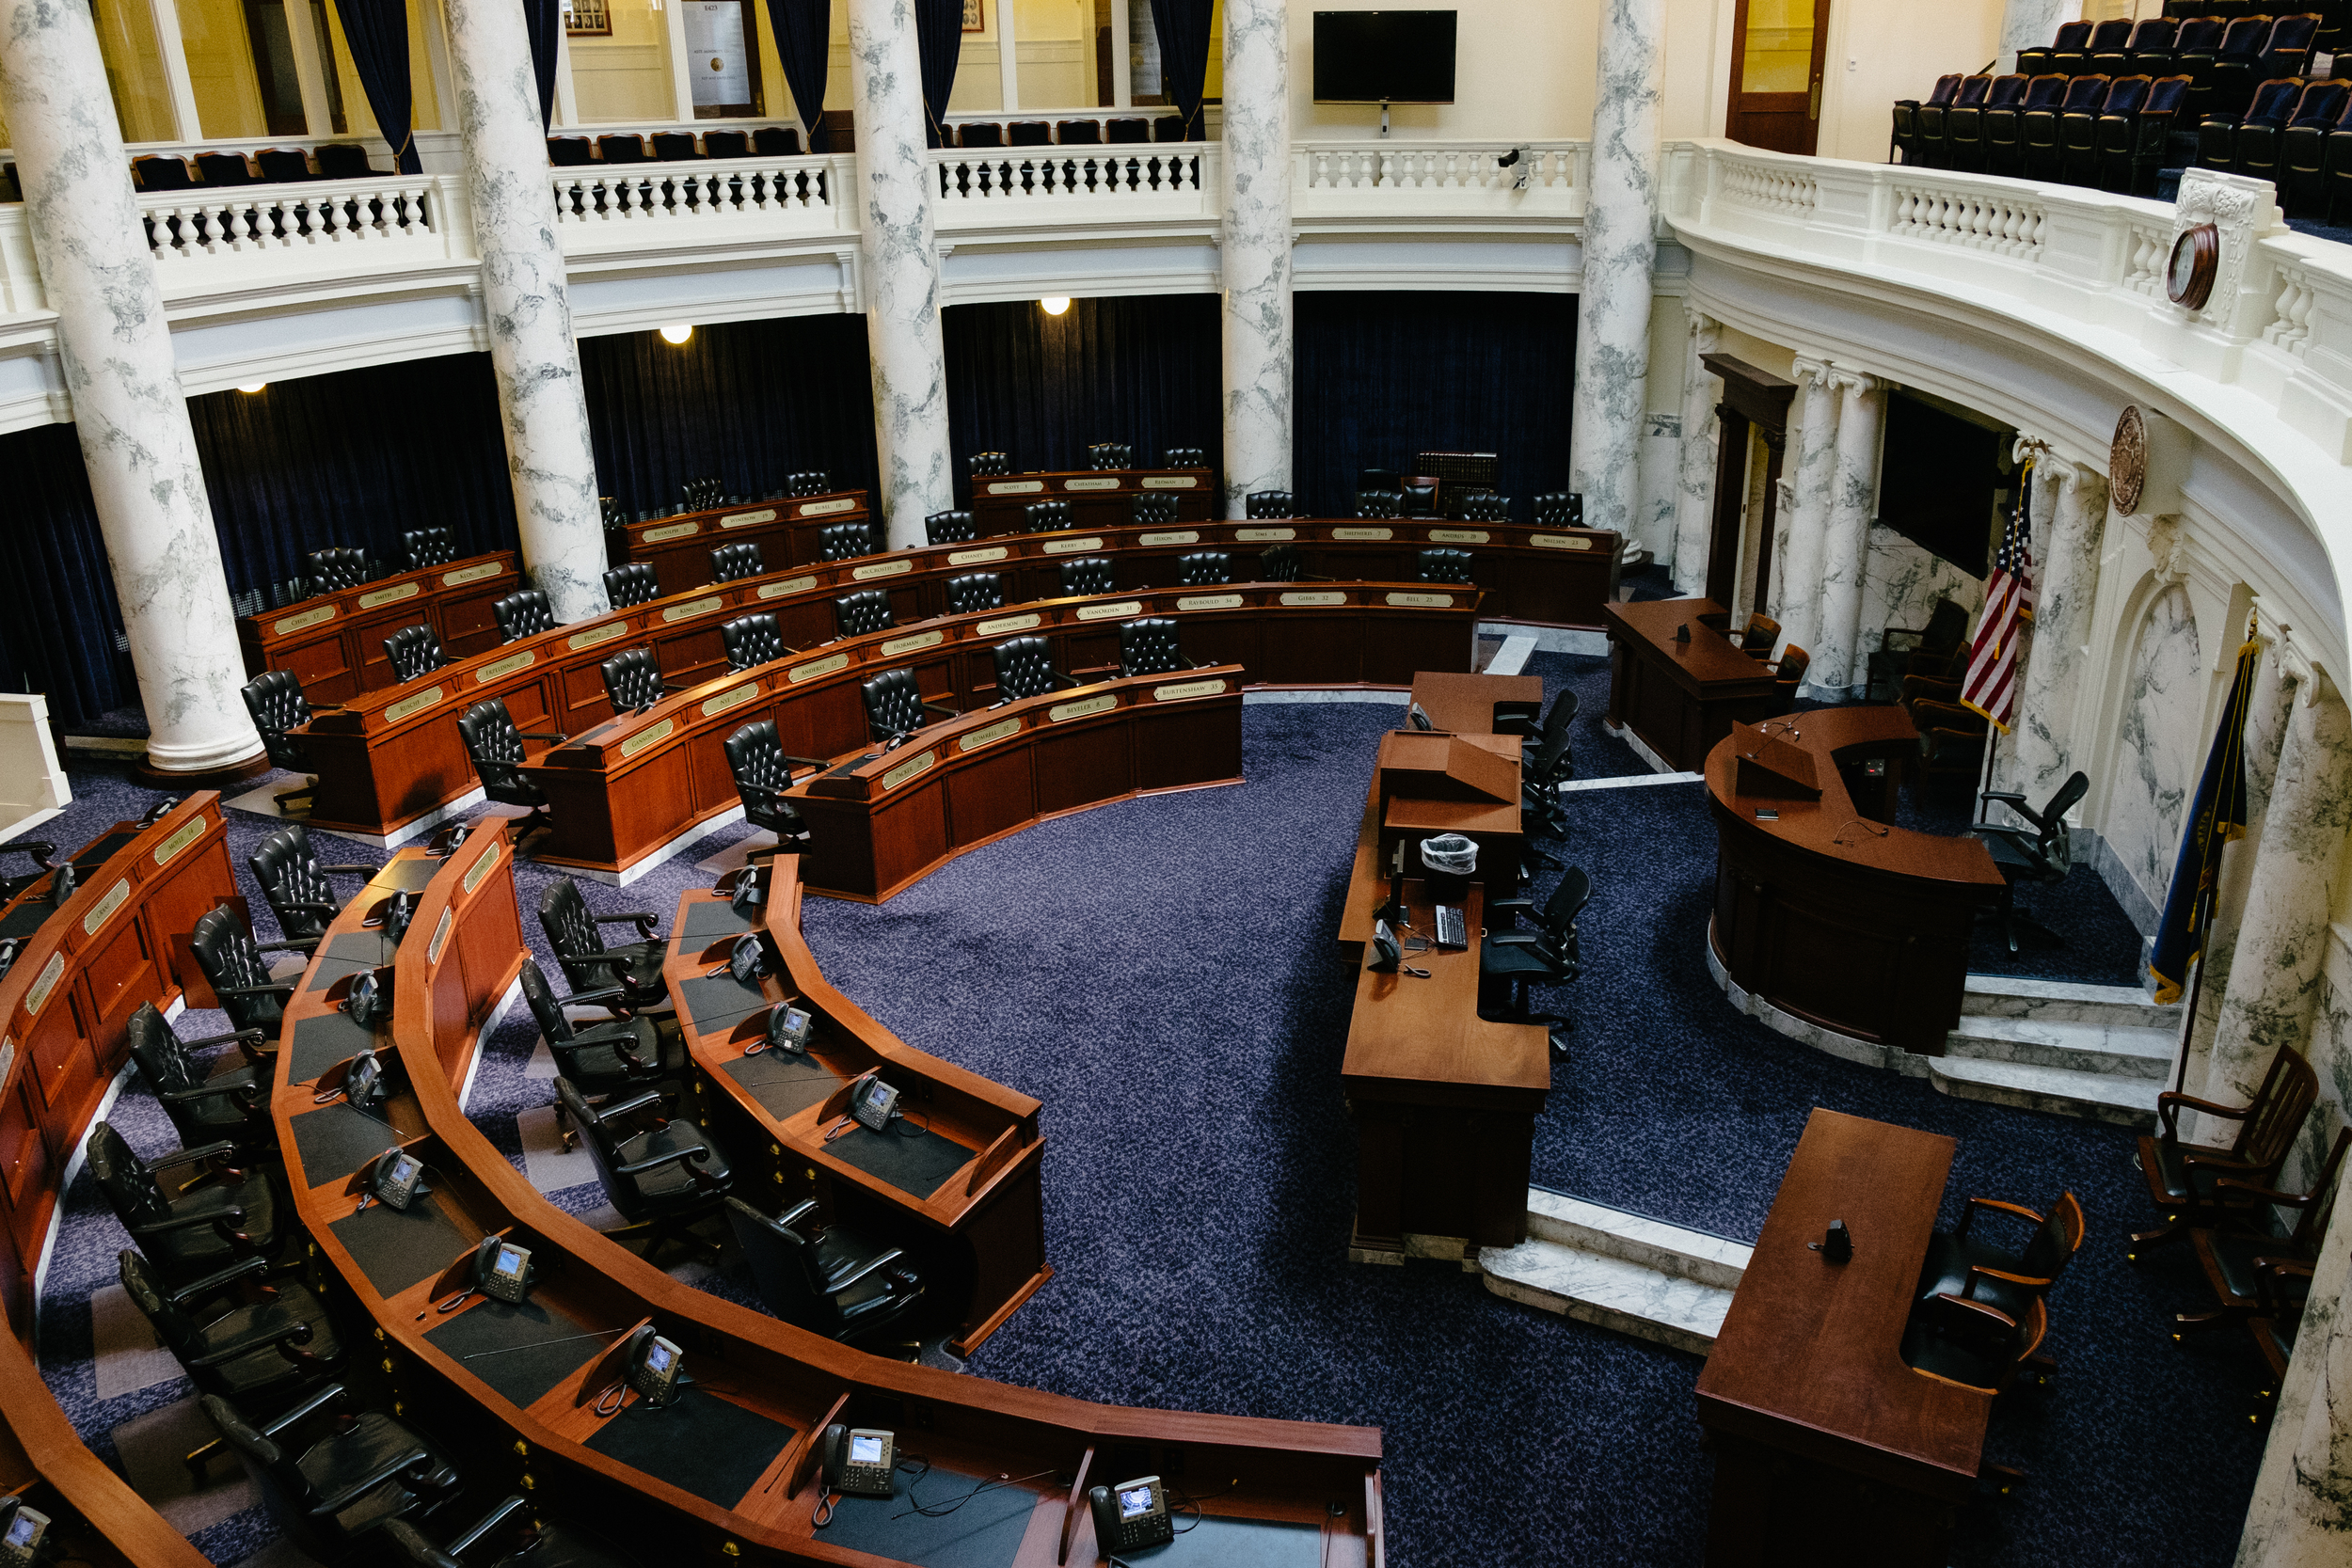 The state legislature meets in both wings and is accessible to the public when not in session.